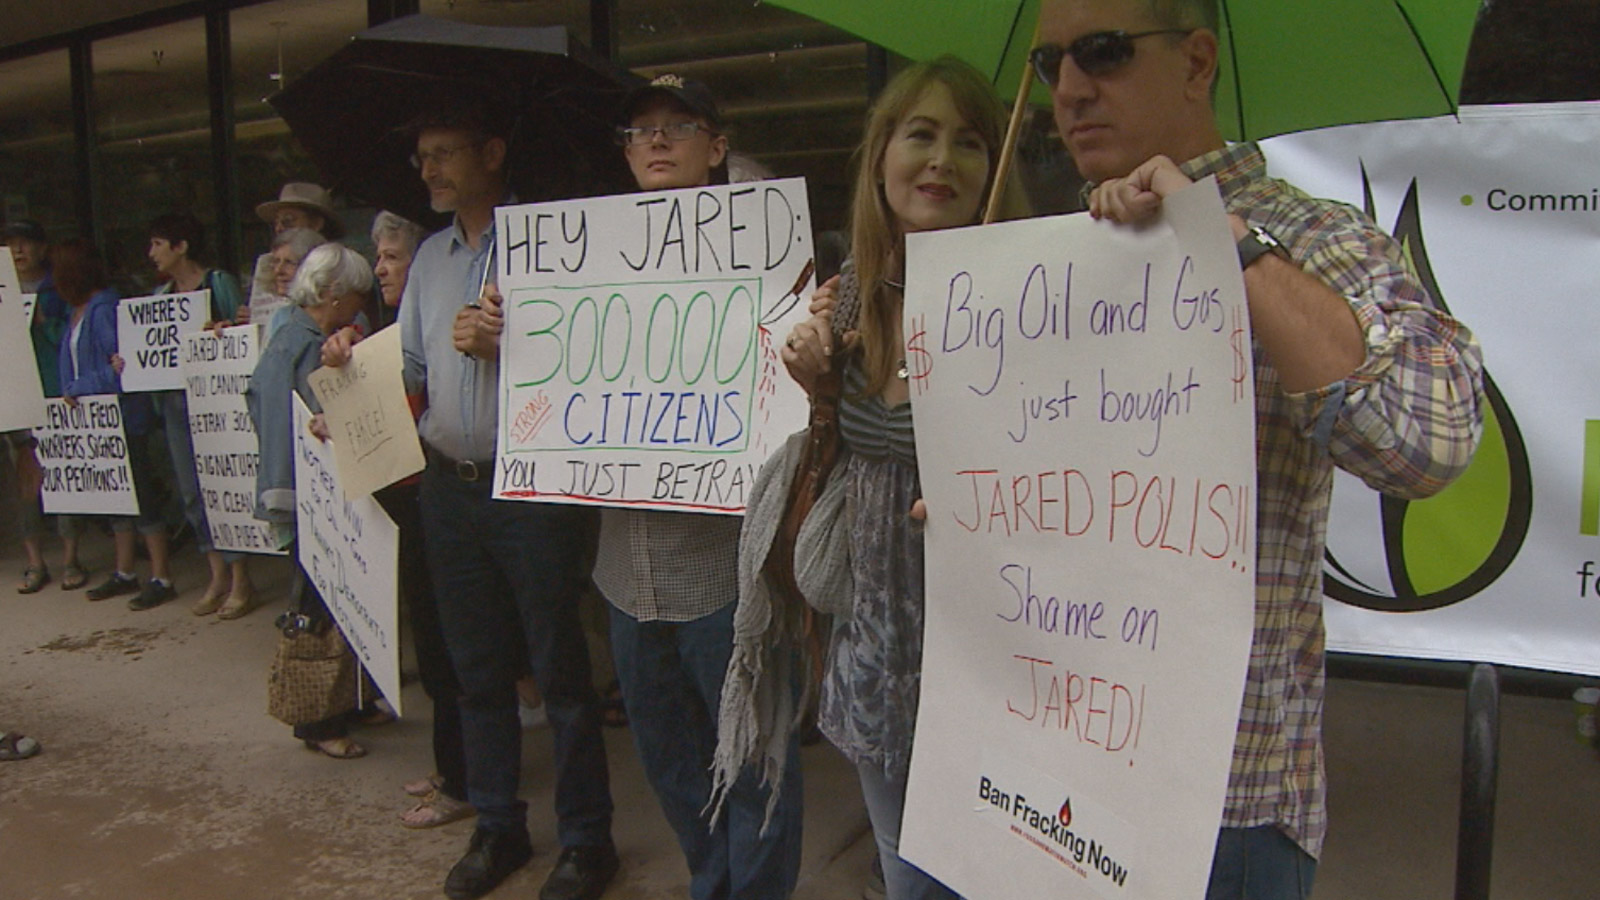 Activists protest a fracking compromise between Gov. Hickenlooper and Rep. Jared Polis (credit: CBS)